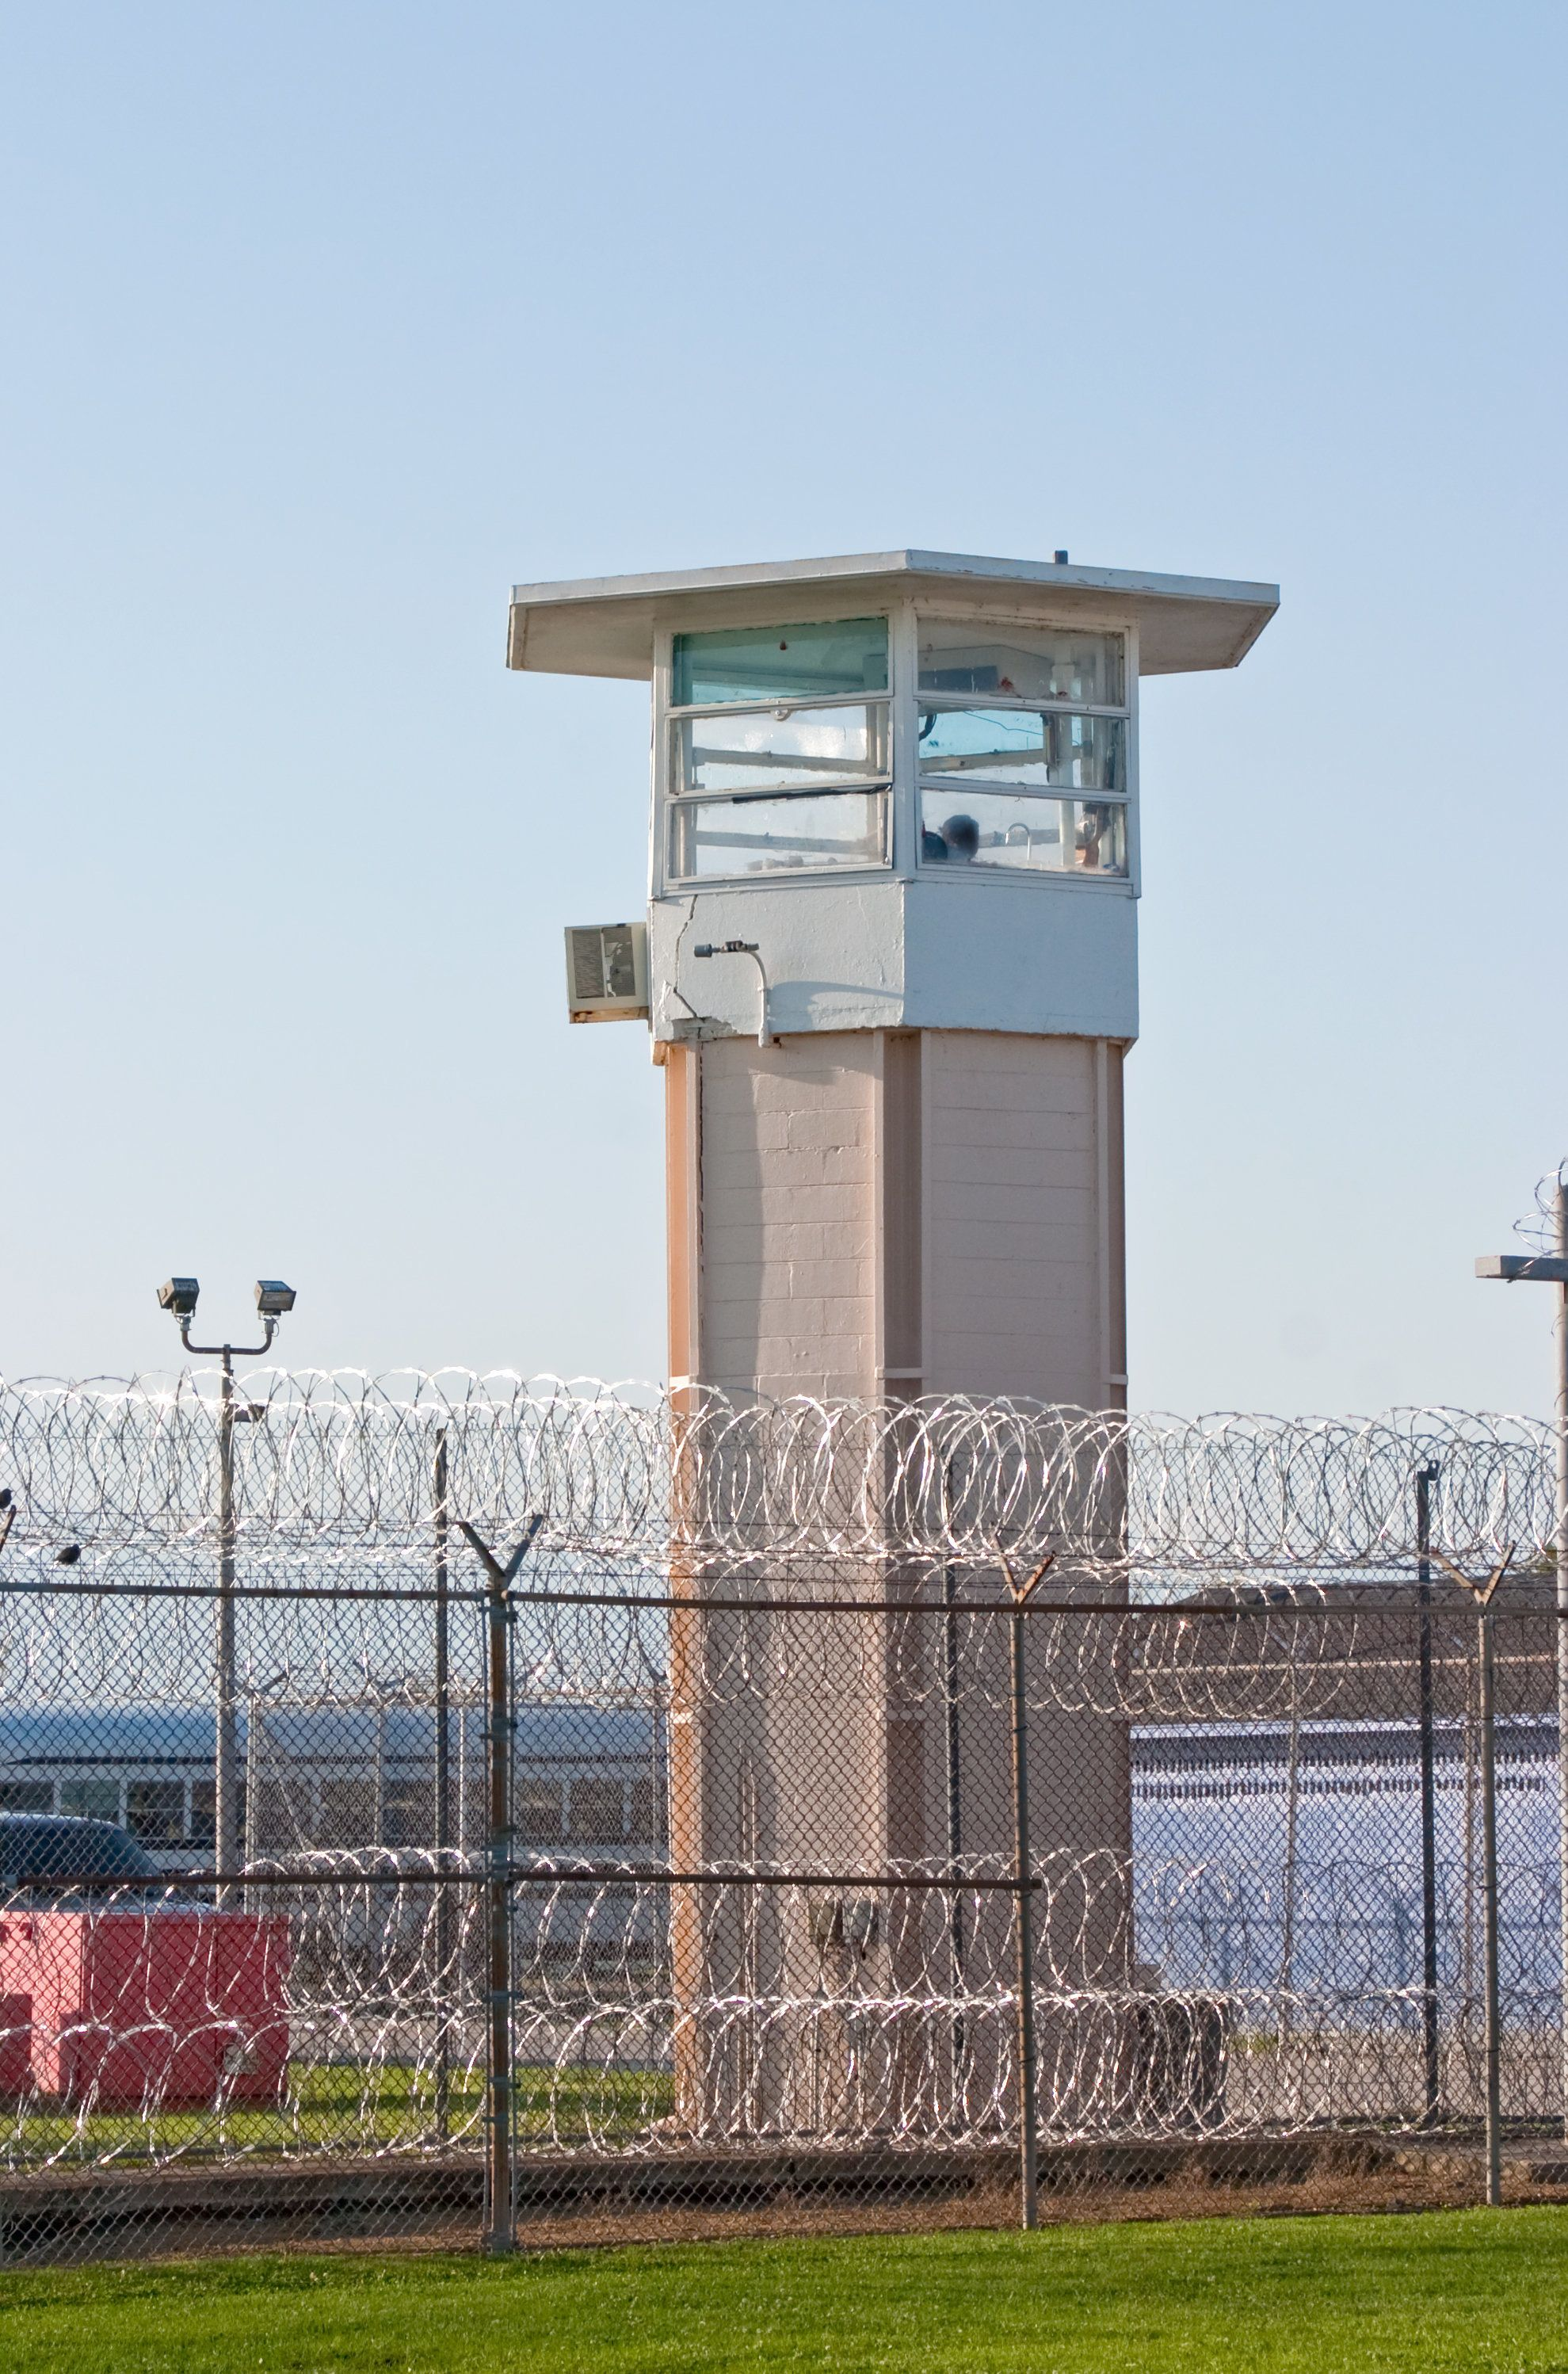 A guard tower as seen from inside the prison yard at Louisiana State Penitentiary at Angola.